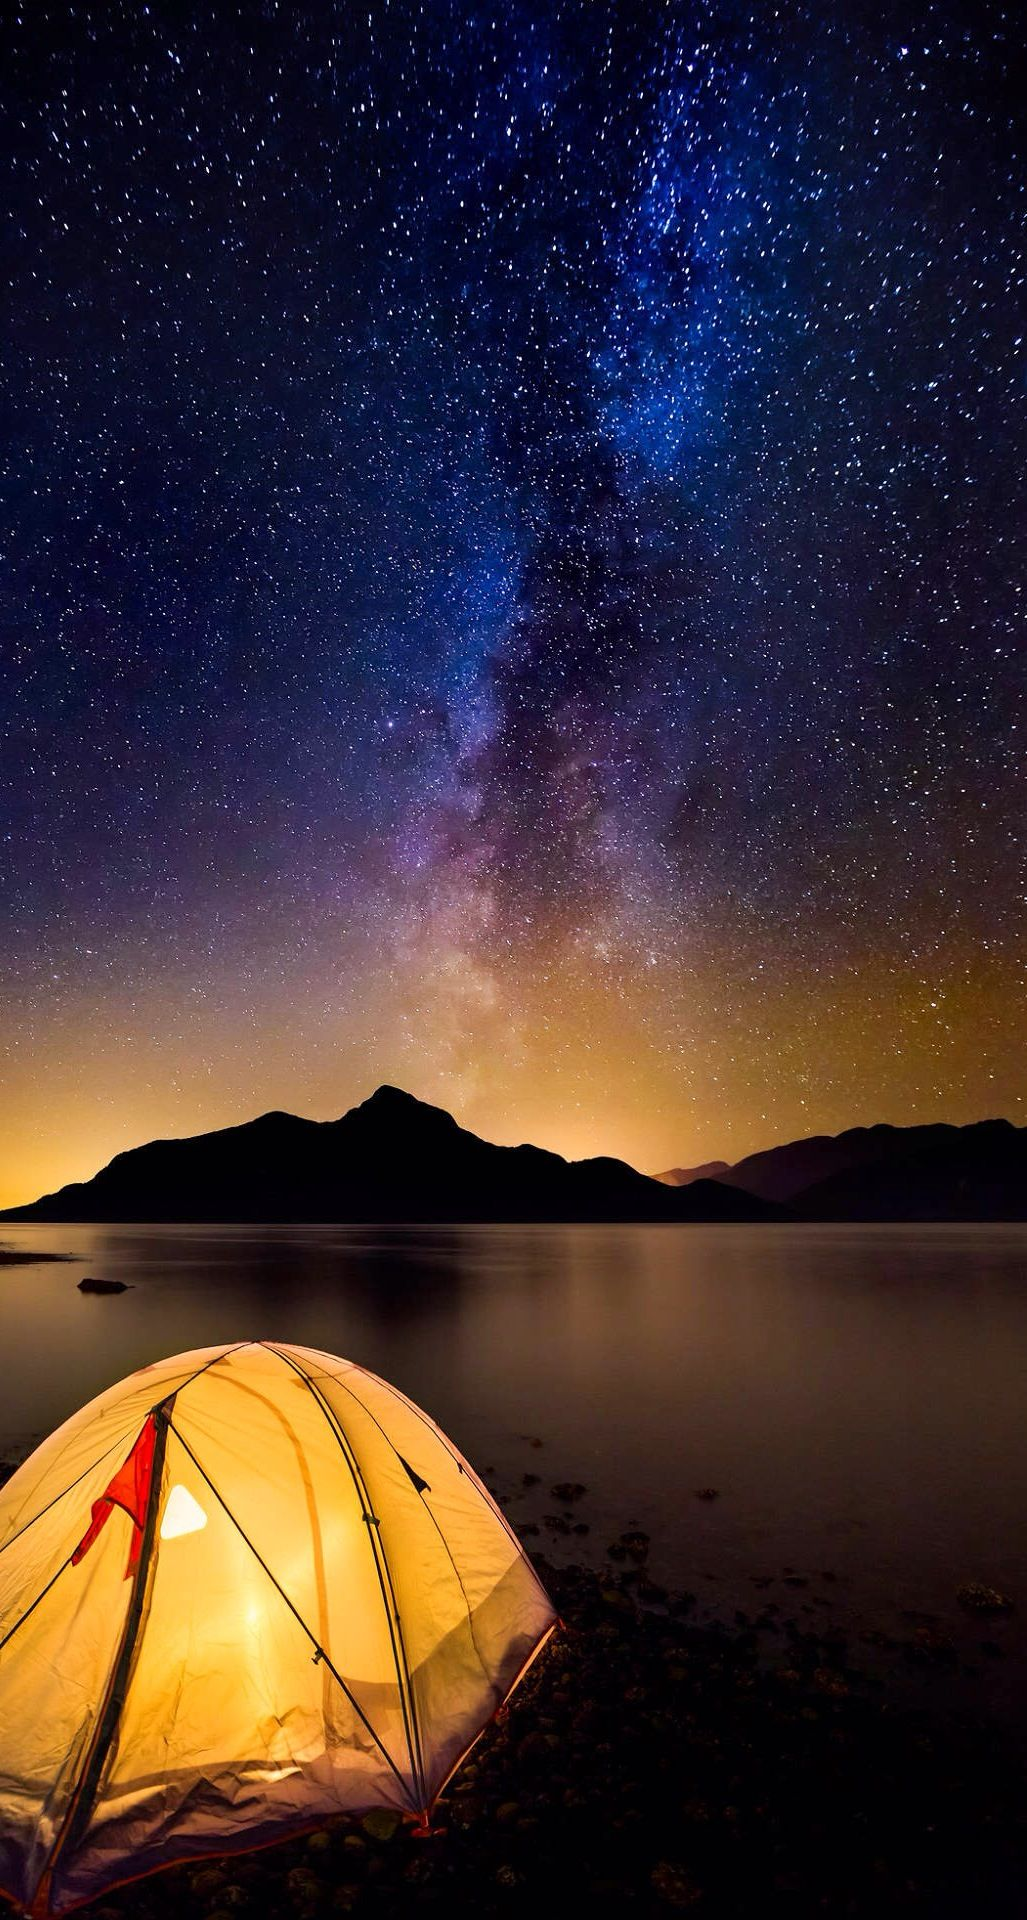 Camping Under Starry Sky And Enjoy Moment Of Silence Great For Phone Background Tap Image To Check Camping Wallpaper Iphone Wallpaper Sky Outdoors Adventure